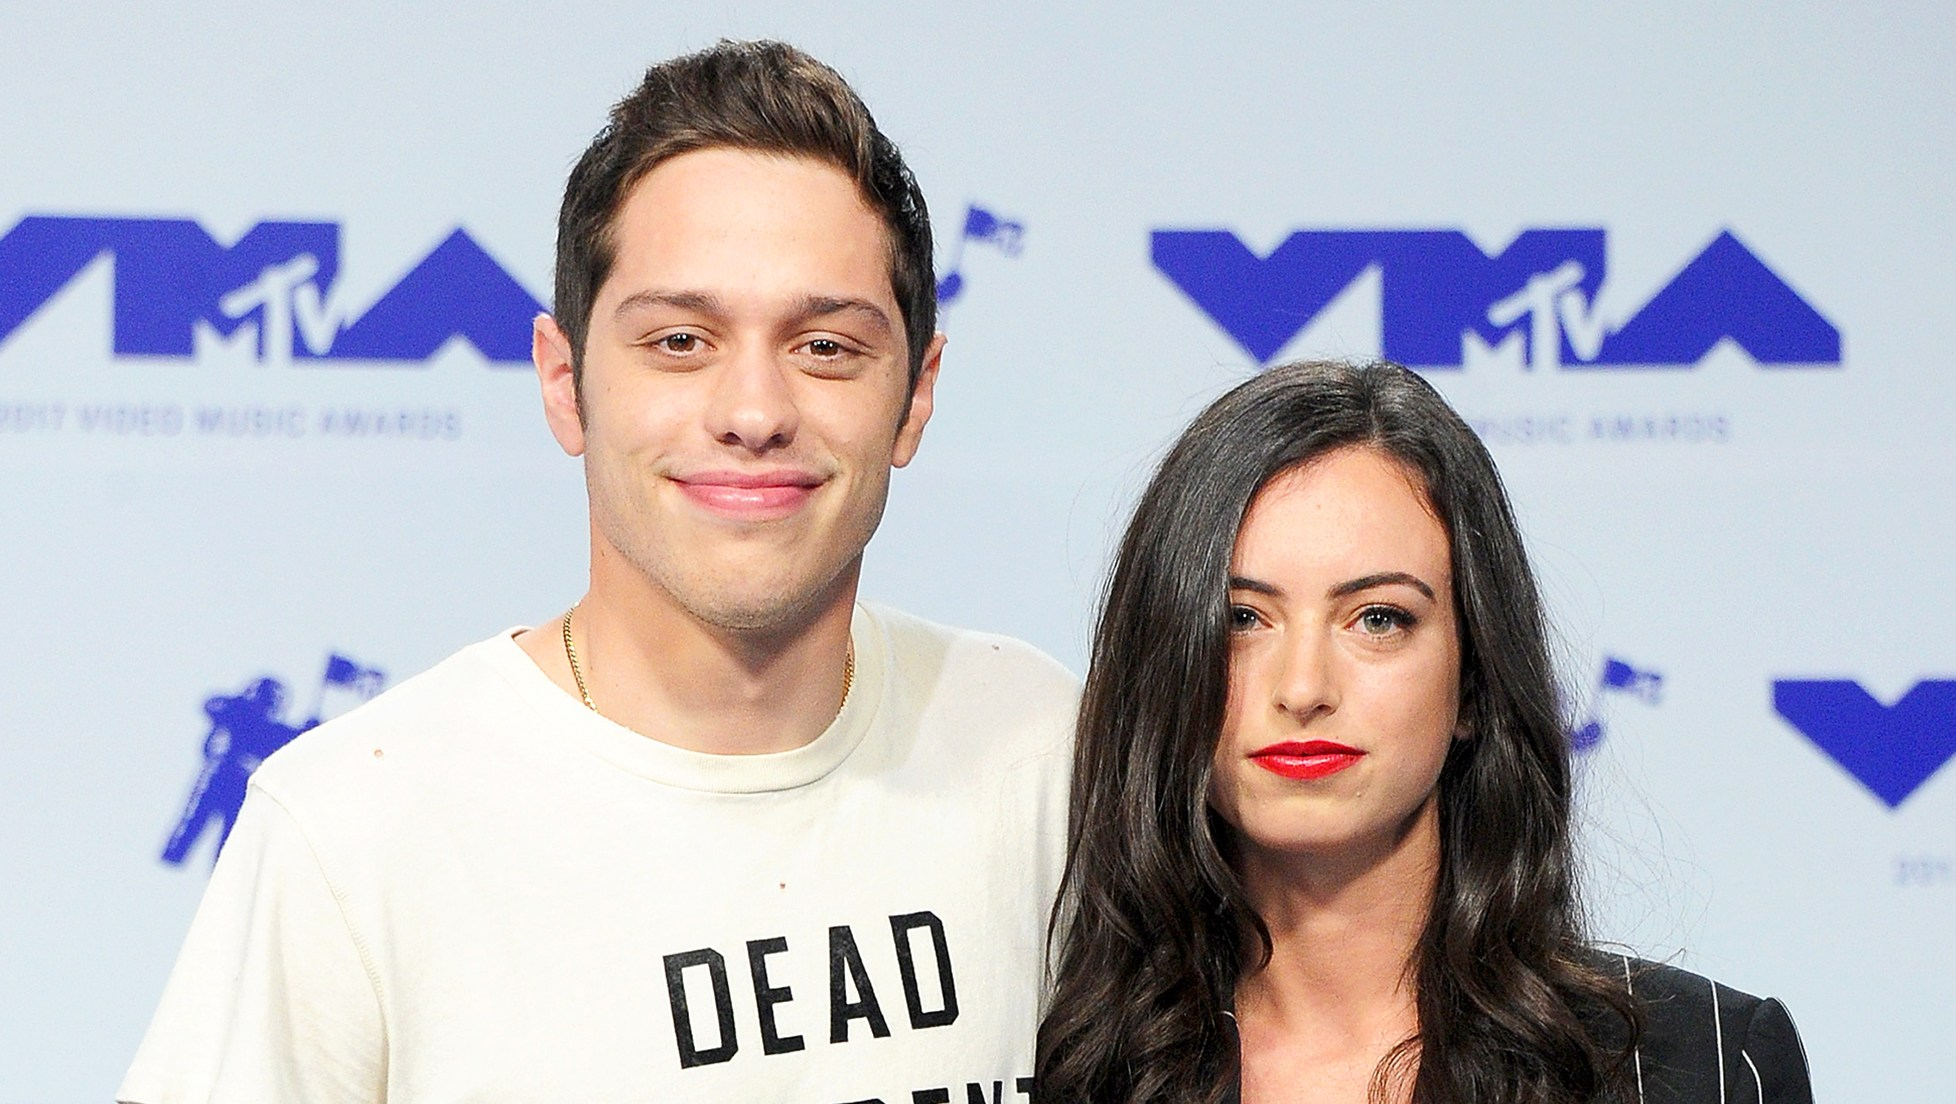 Pete Davidson and Cazzie David attend the 2017 MTV Video Music Awards at The Forum in Inglewood, California.